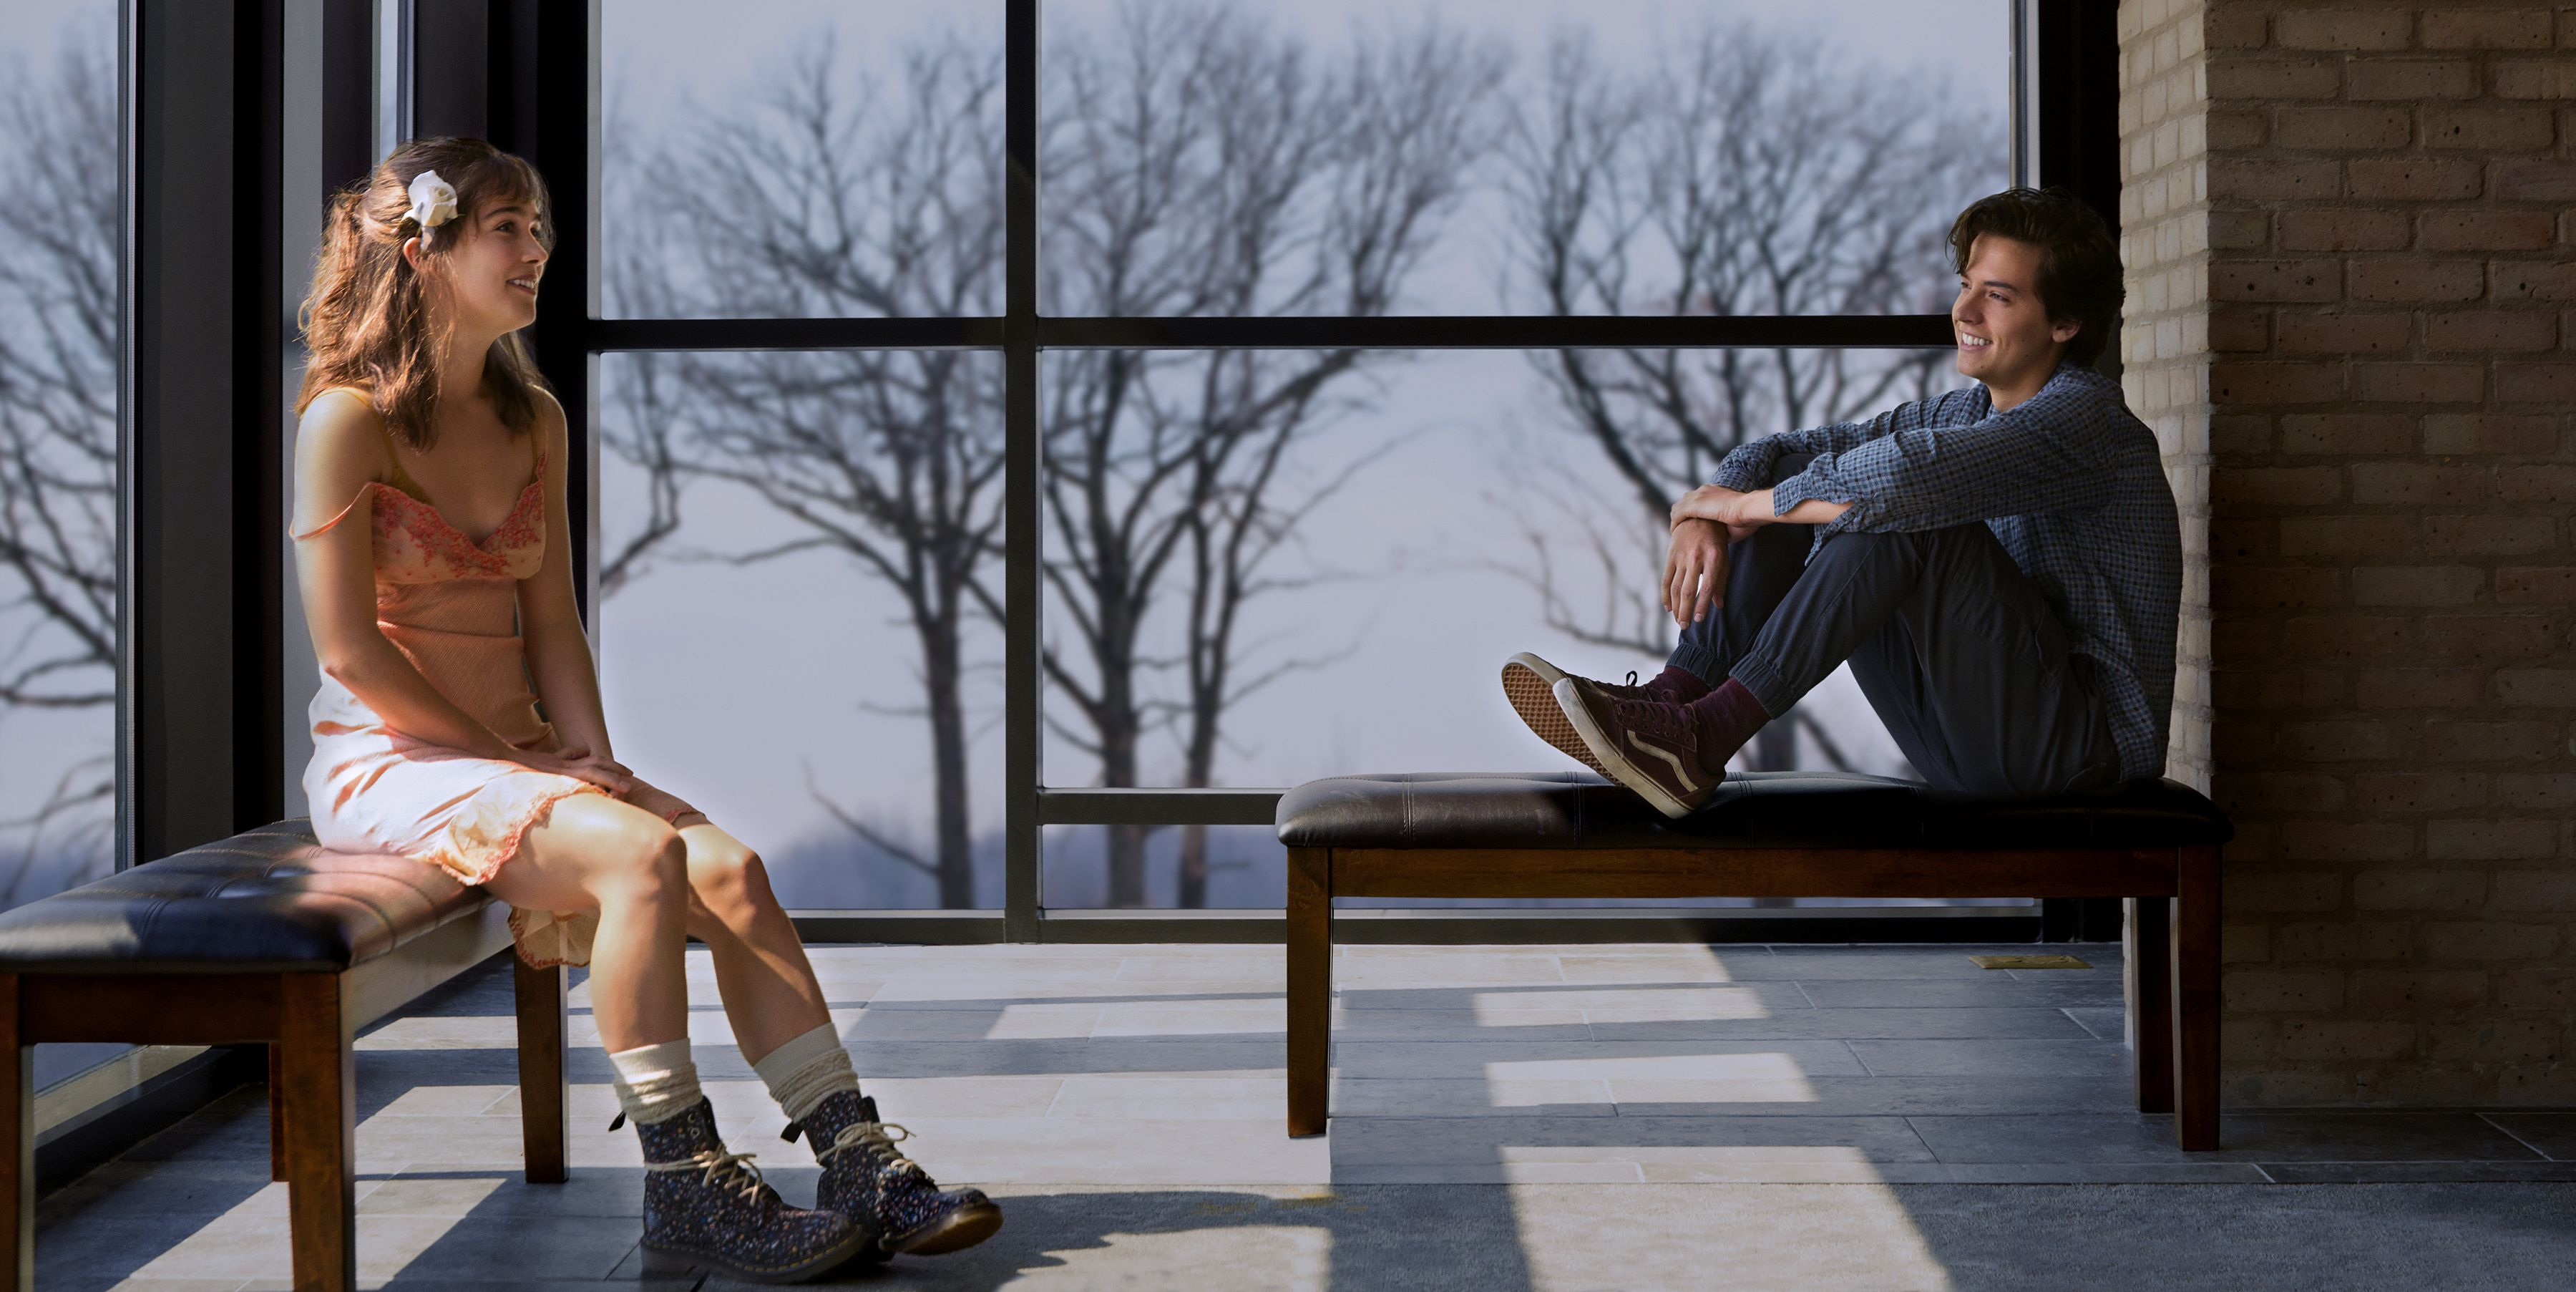 """The First Trailer for Cole Sprouse's New Film, """"Five Feet Apart,"""" is Here and It Looks Nothing Like """"Riverdale"""""""